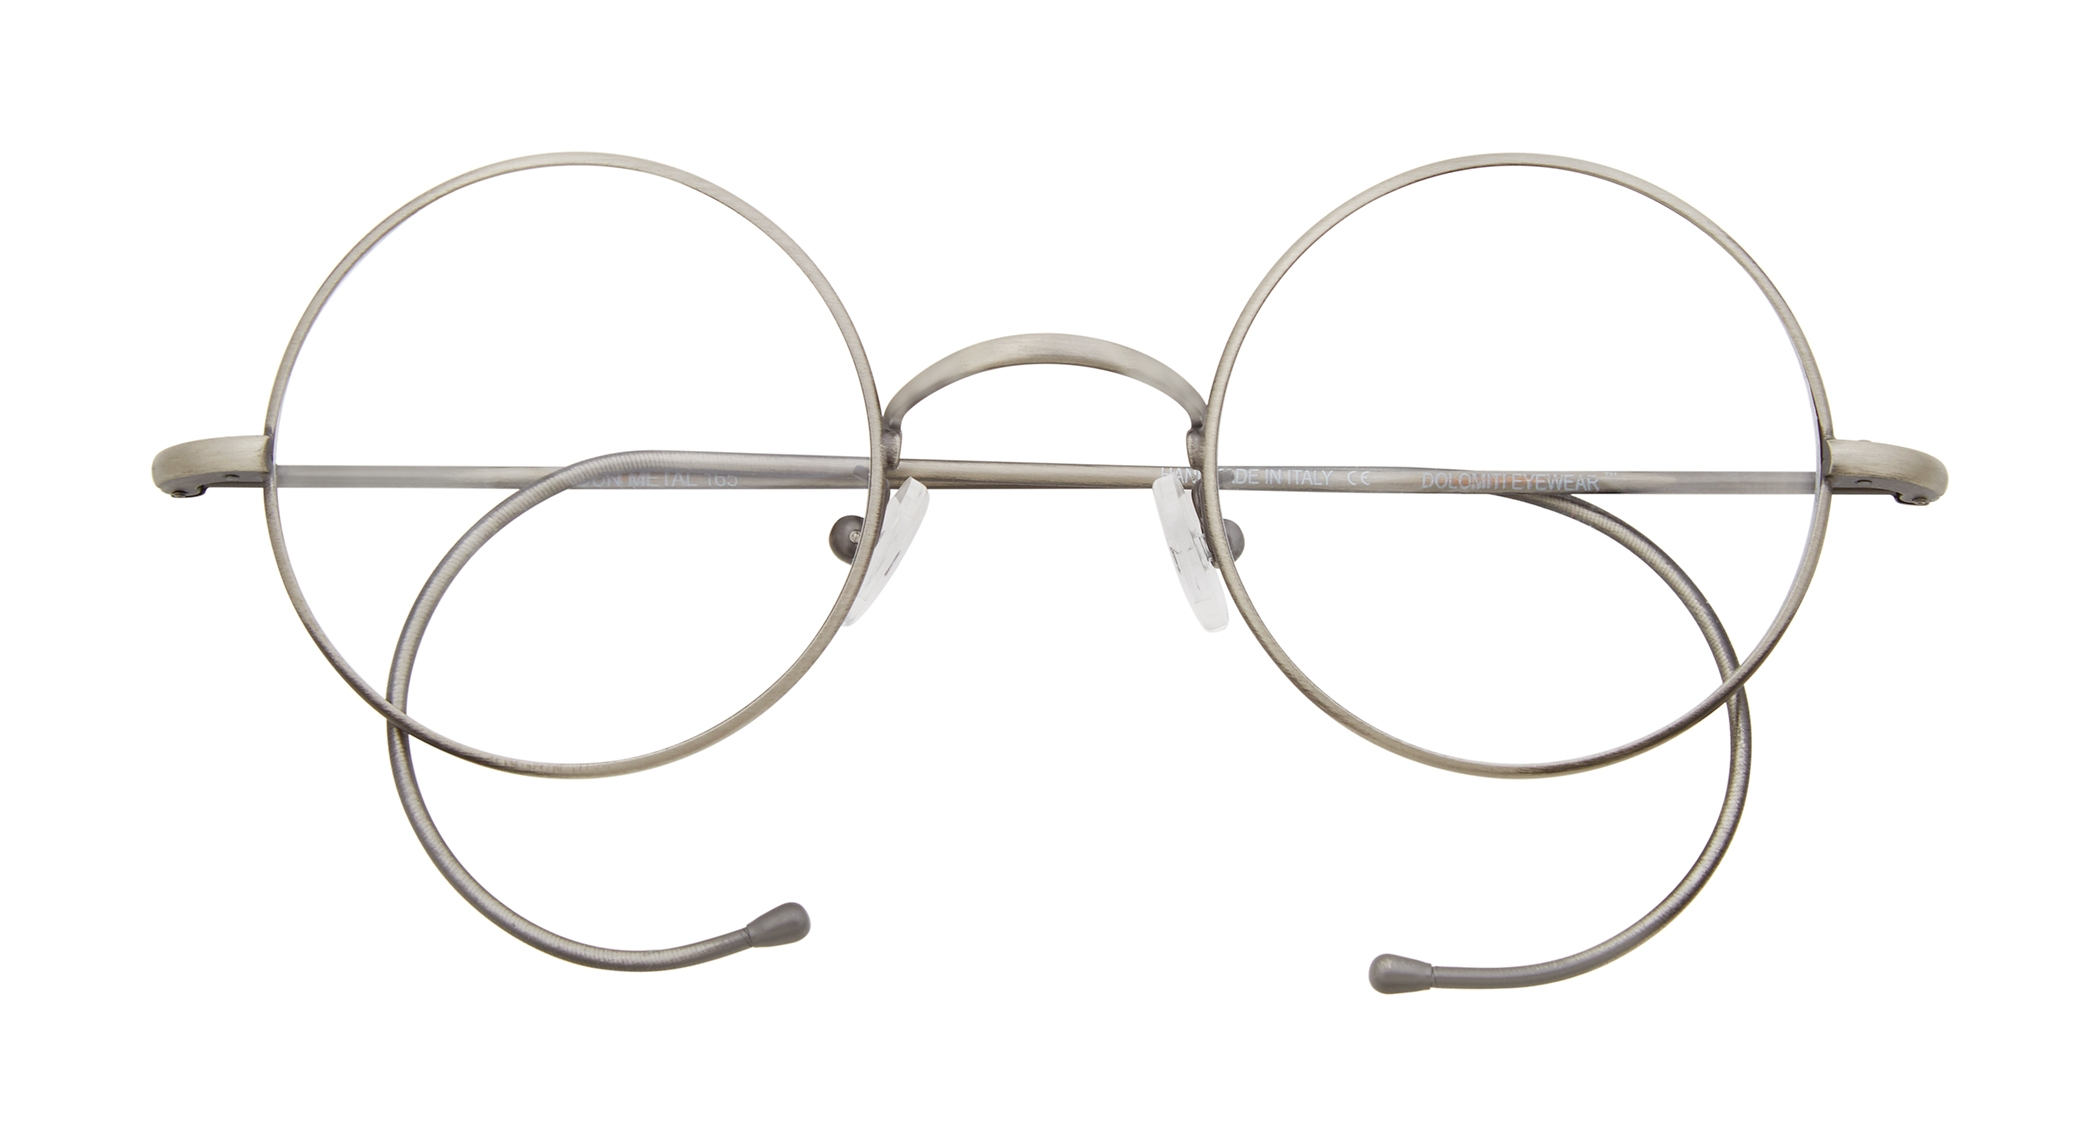 1651ea1cde0 Lifetime-Eyecare.com has the most competitive prices for Contact ...